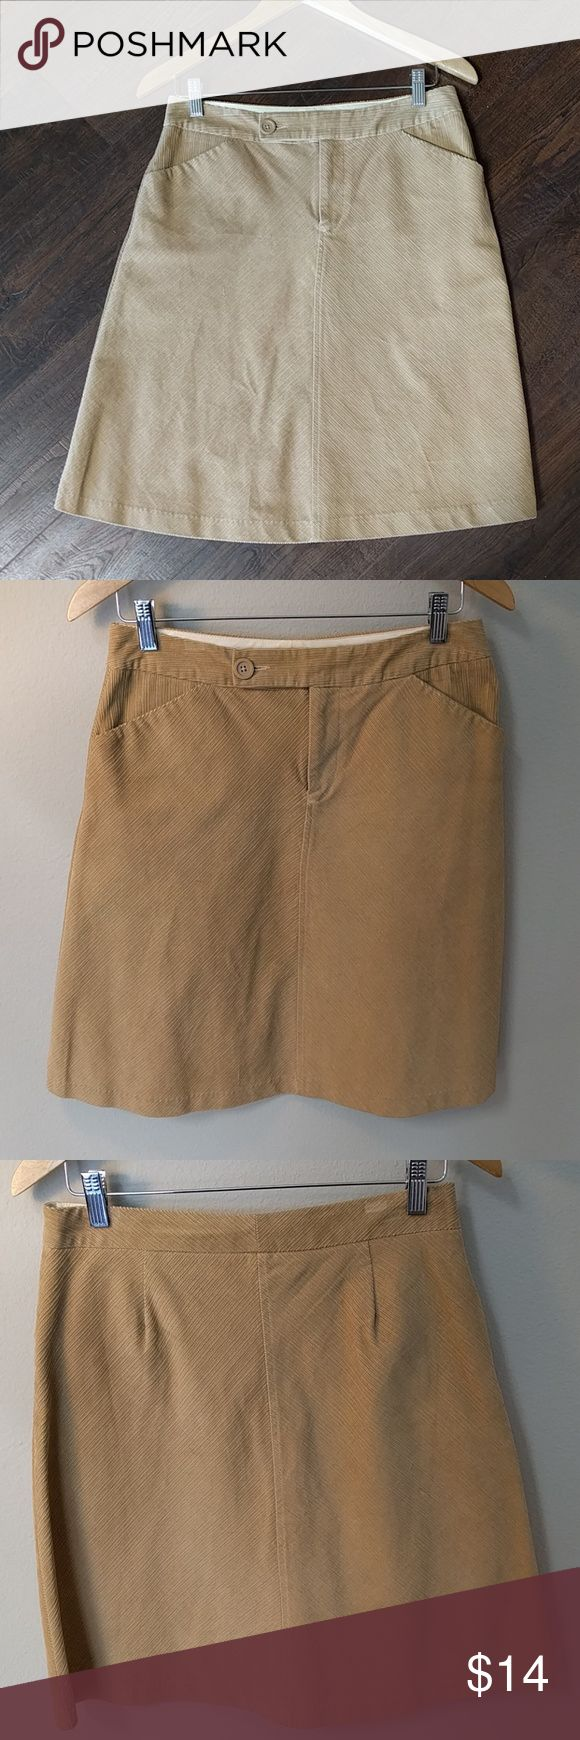 Classy gap skirt SALE Sale $12 until March 29th. Corduroy camel in color cut on the a line, looks amazing with black or brown riding boots. GAP Skirts